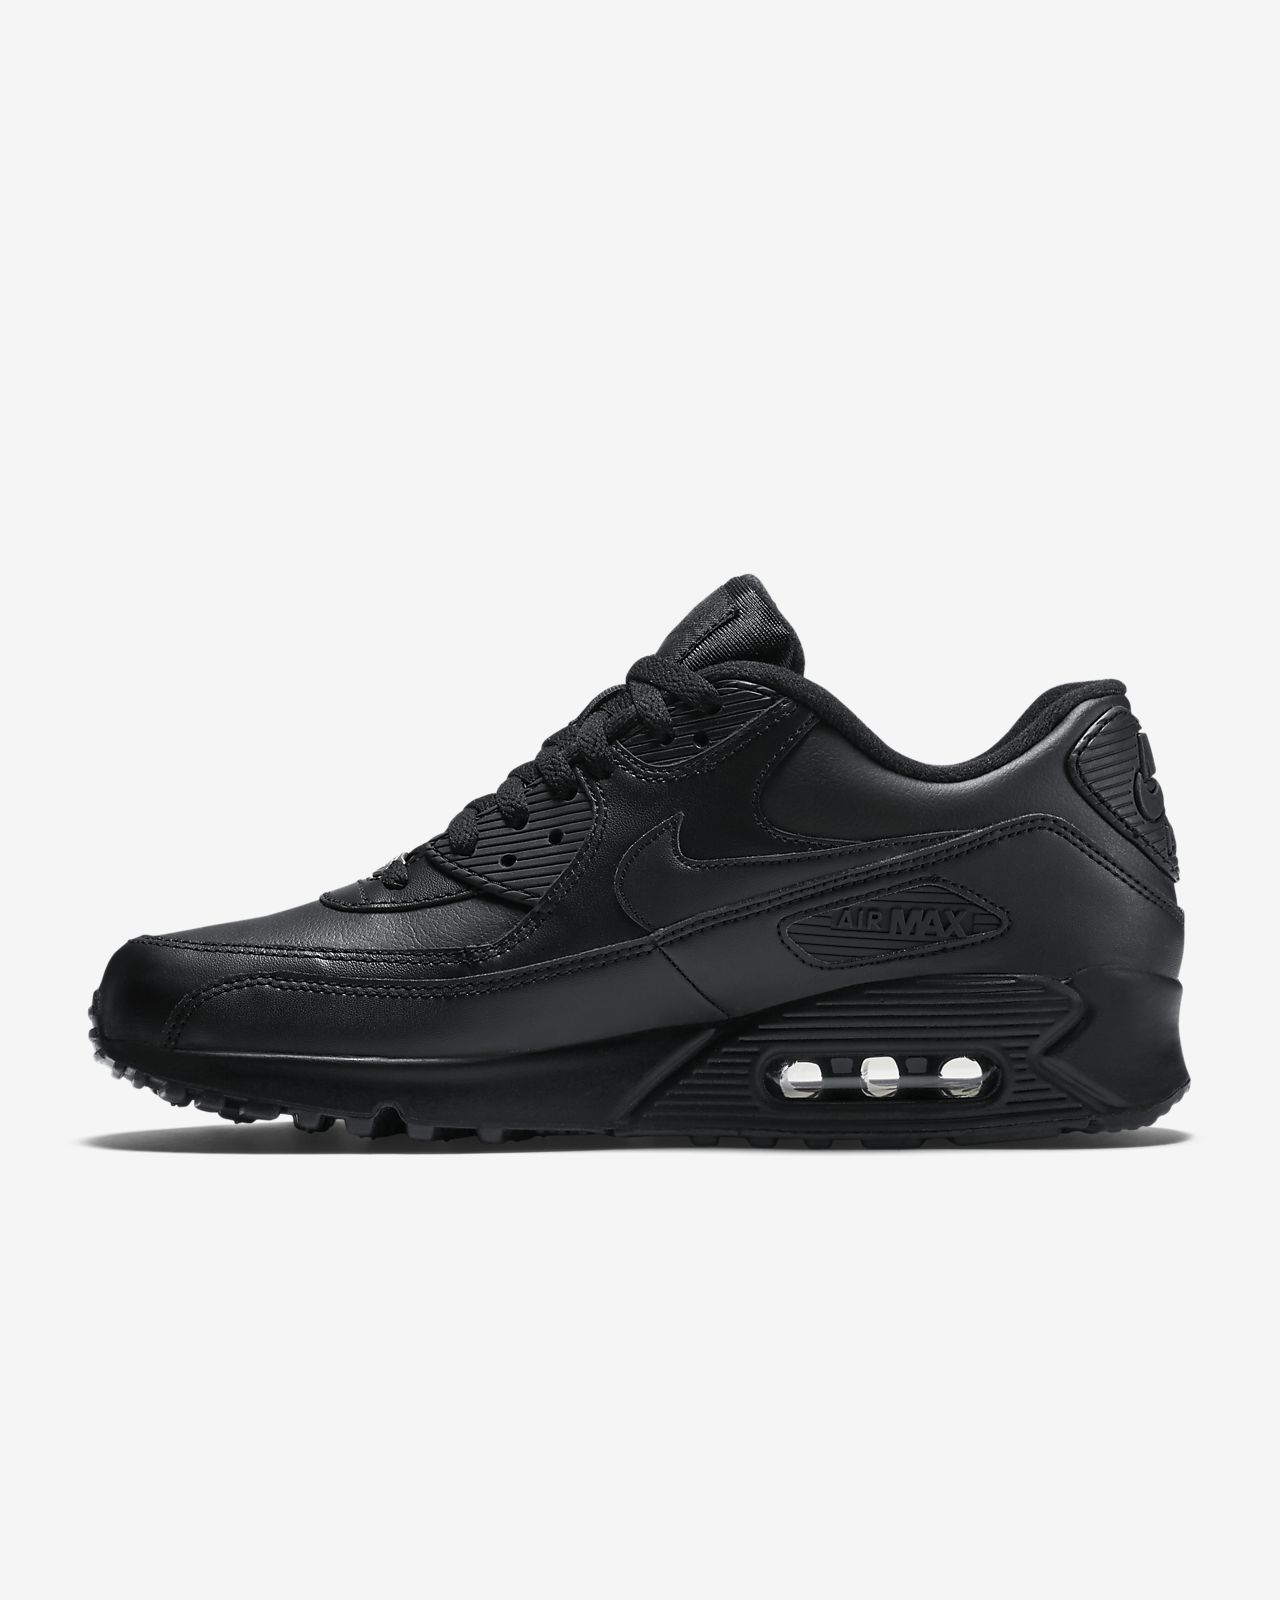 outlet store 01050 8cdc2 ... Nike Air Max 90 Leather Herrenschuh